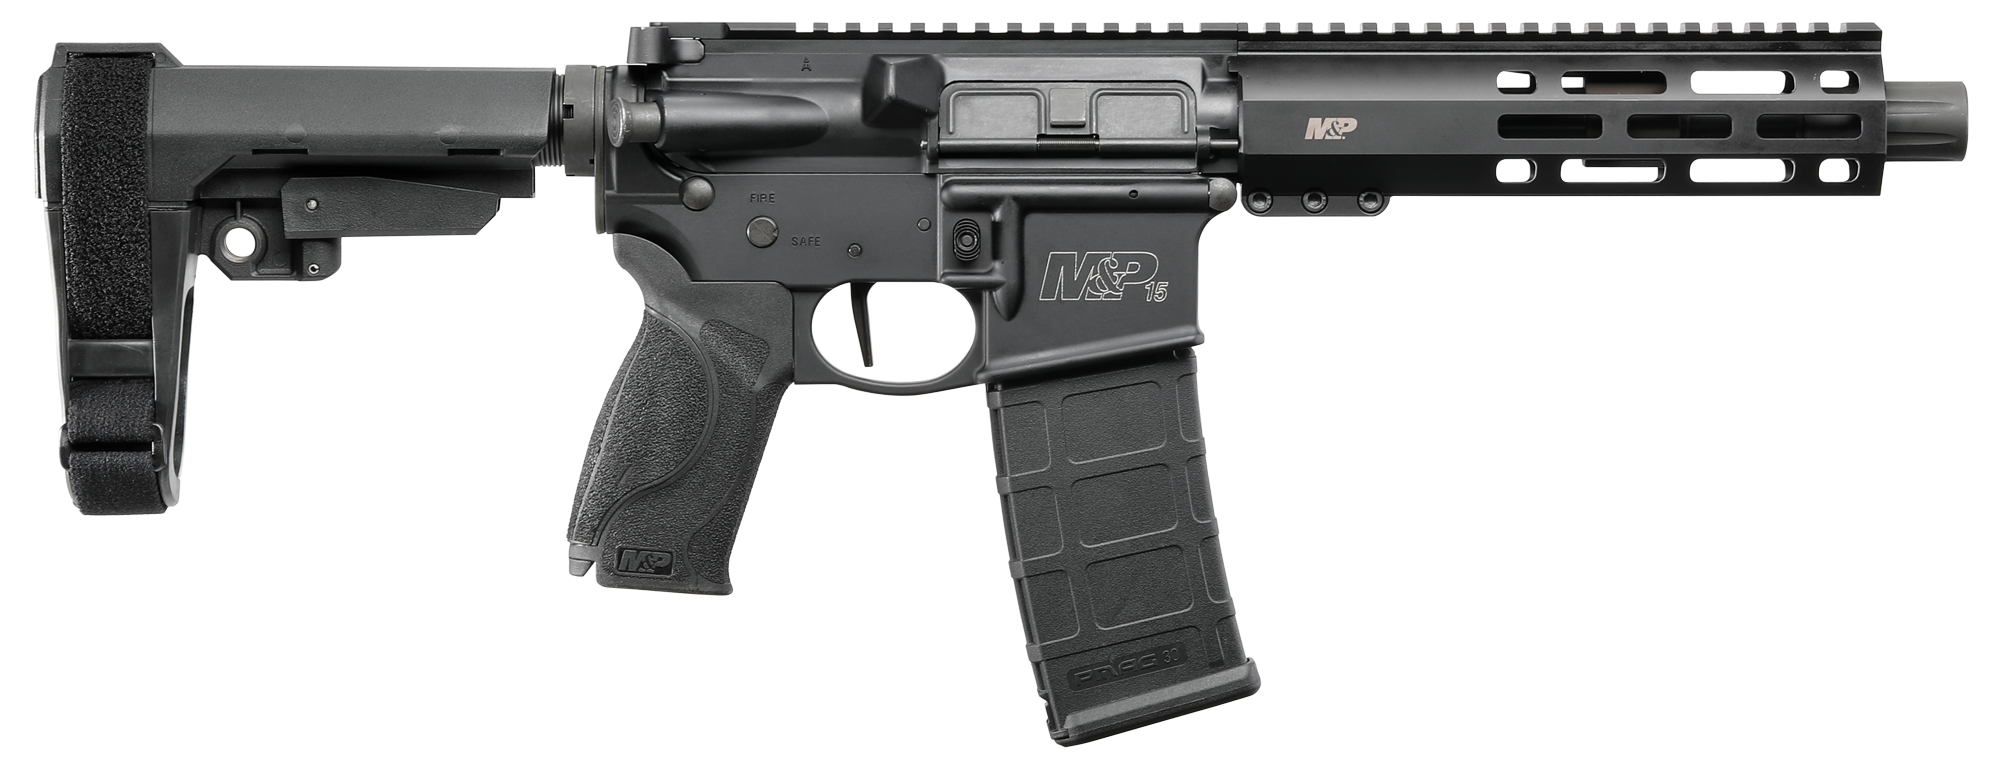 Smith & Wesson Introduces New M&P15 Pistol in 223/5.56!